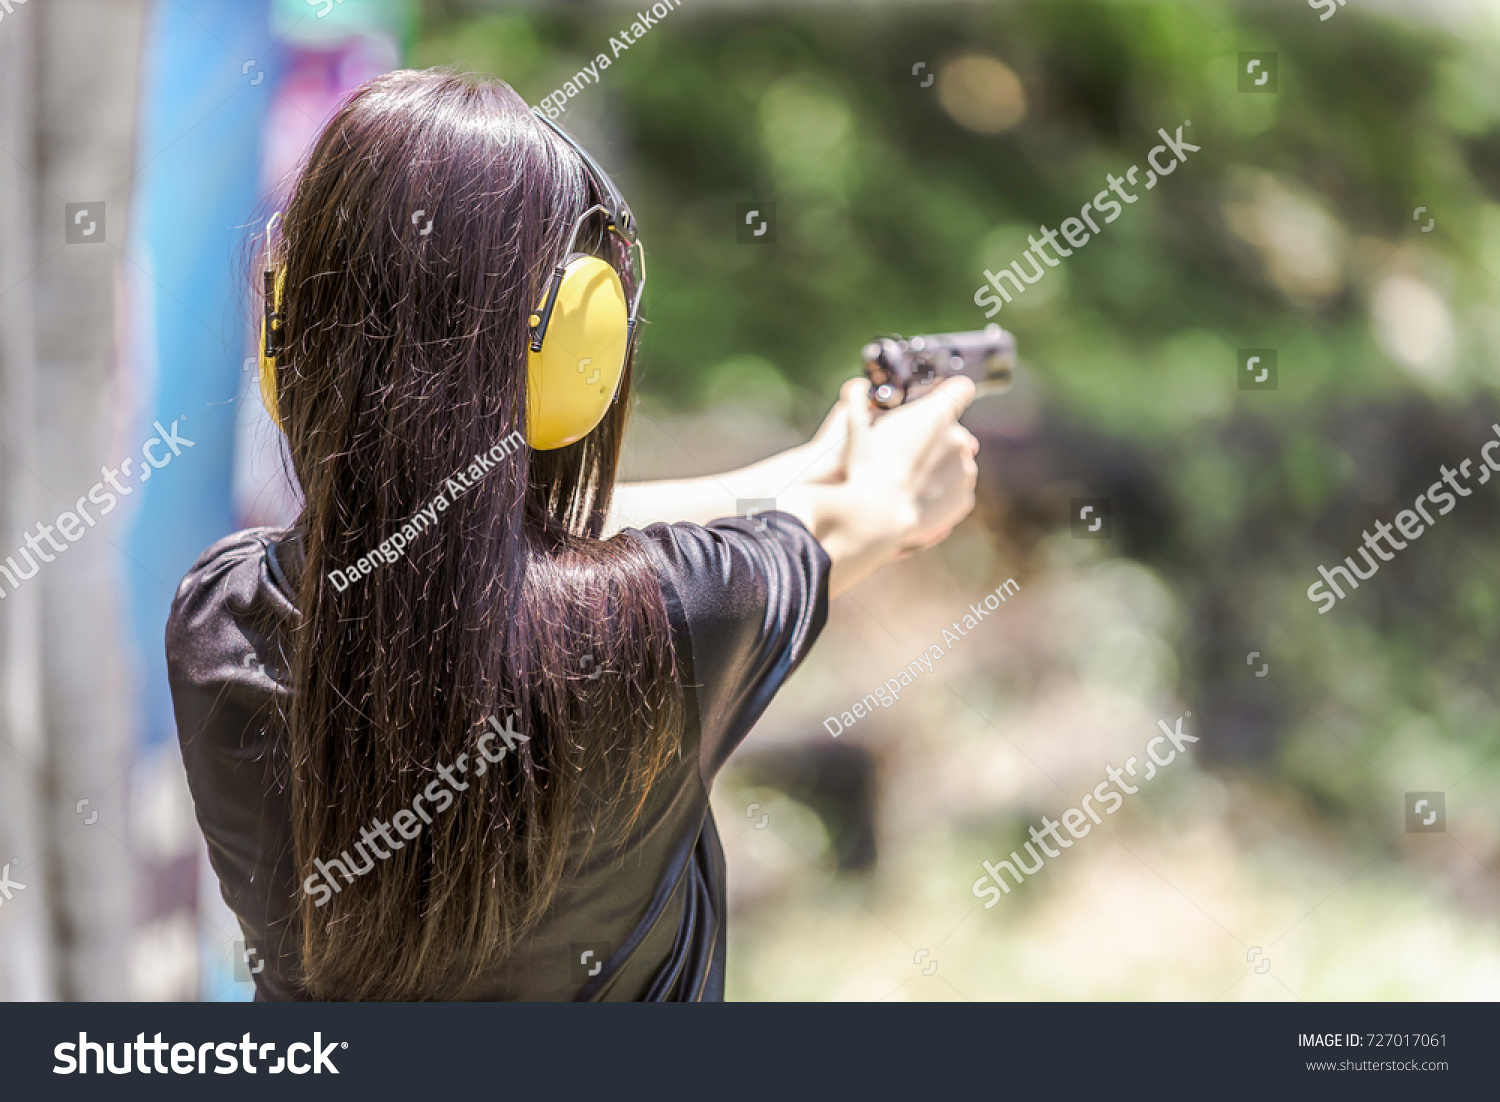 f8ee57bf77fd5 Woman aiming pistol at target out indoor firing range or shooting range.